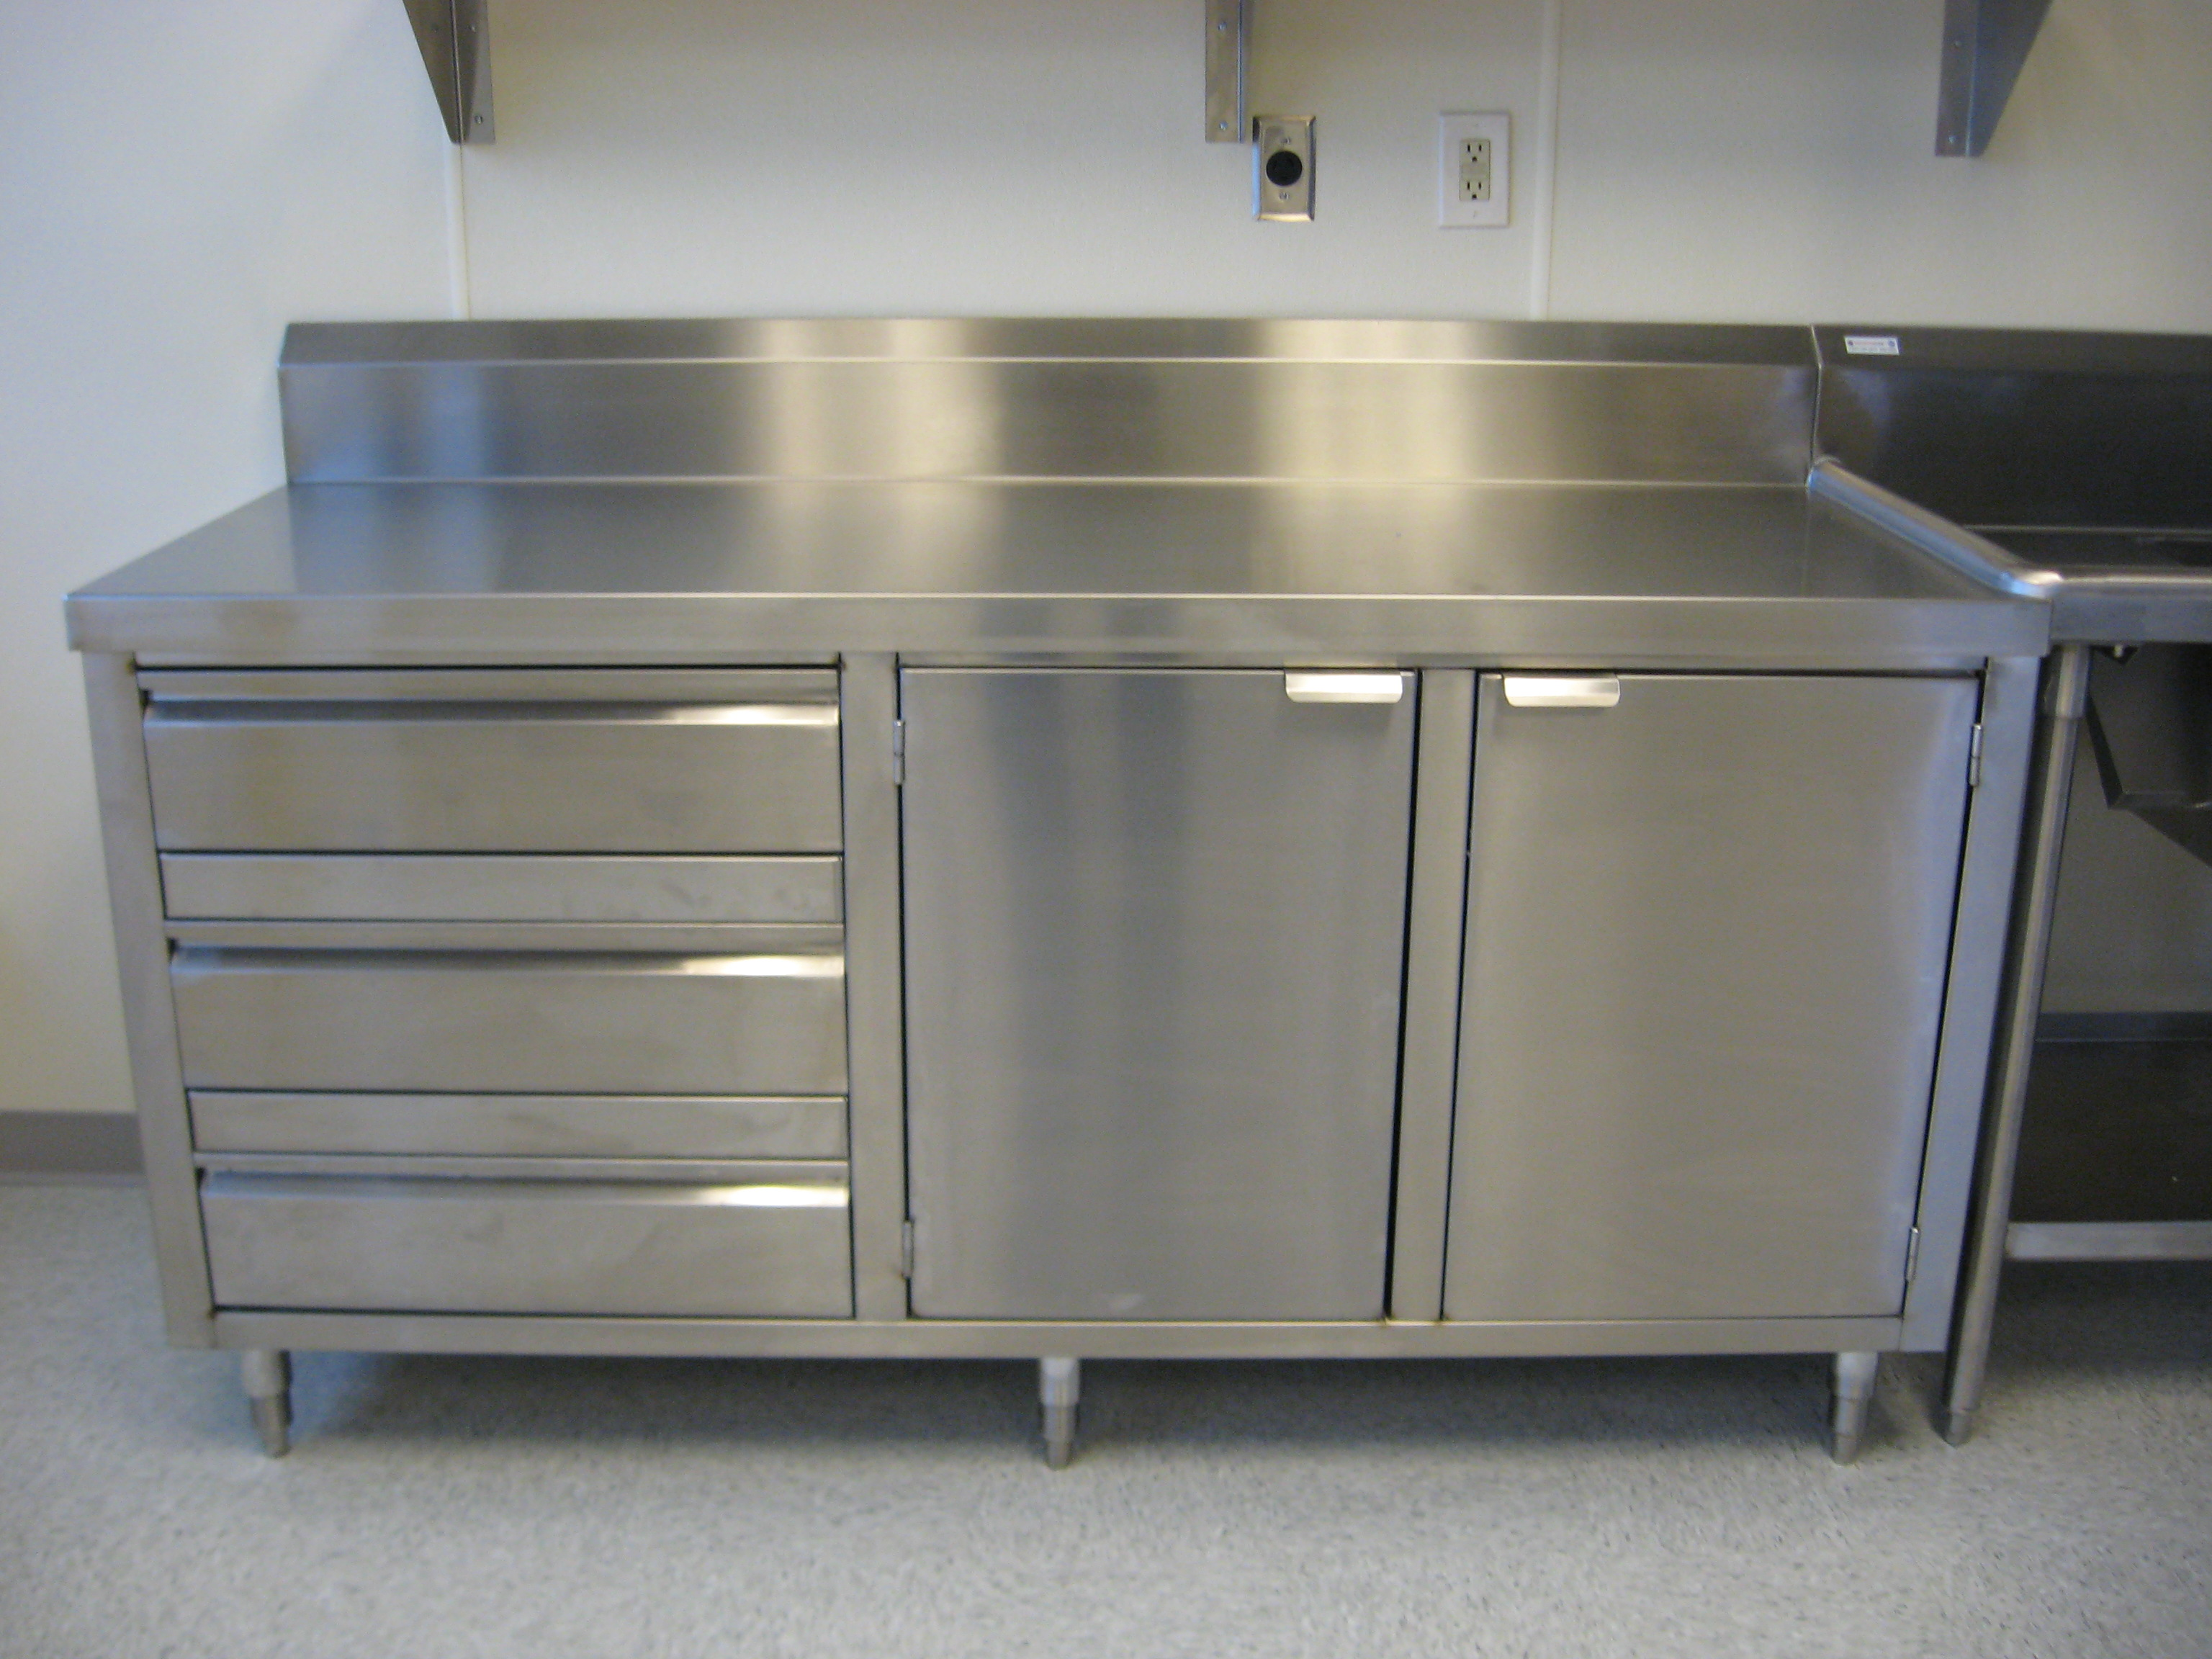 Stainless steel cabinet allied stainlessallied stainless for Metal kitchen cabinets